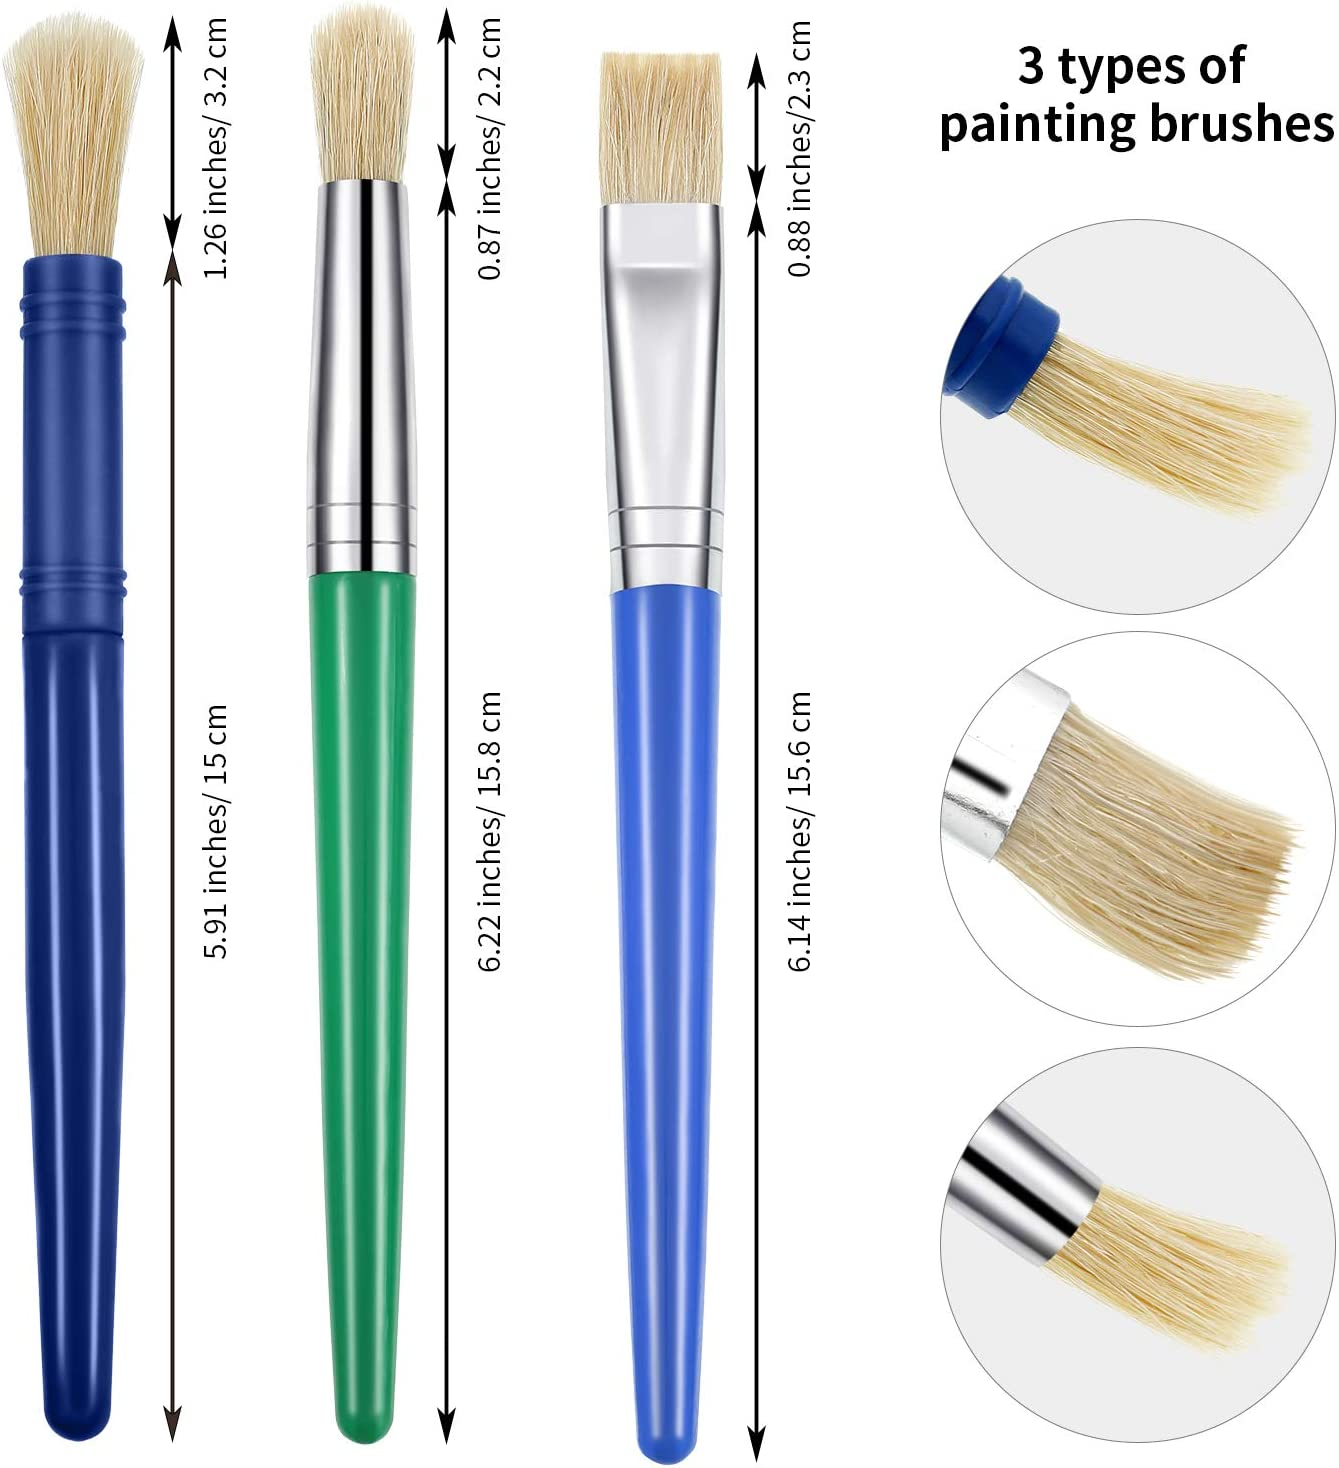 Outus 26 Pieces Hog Bristle Paint Brushes Round Flat Paint Brushes for School Home Painting Supplies Assorted Colors